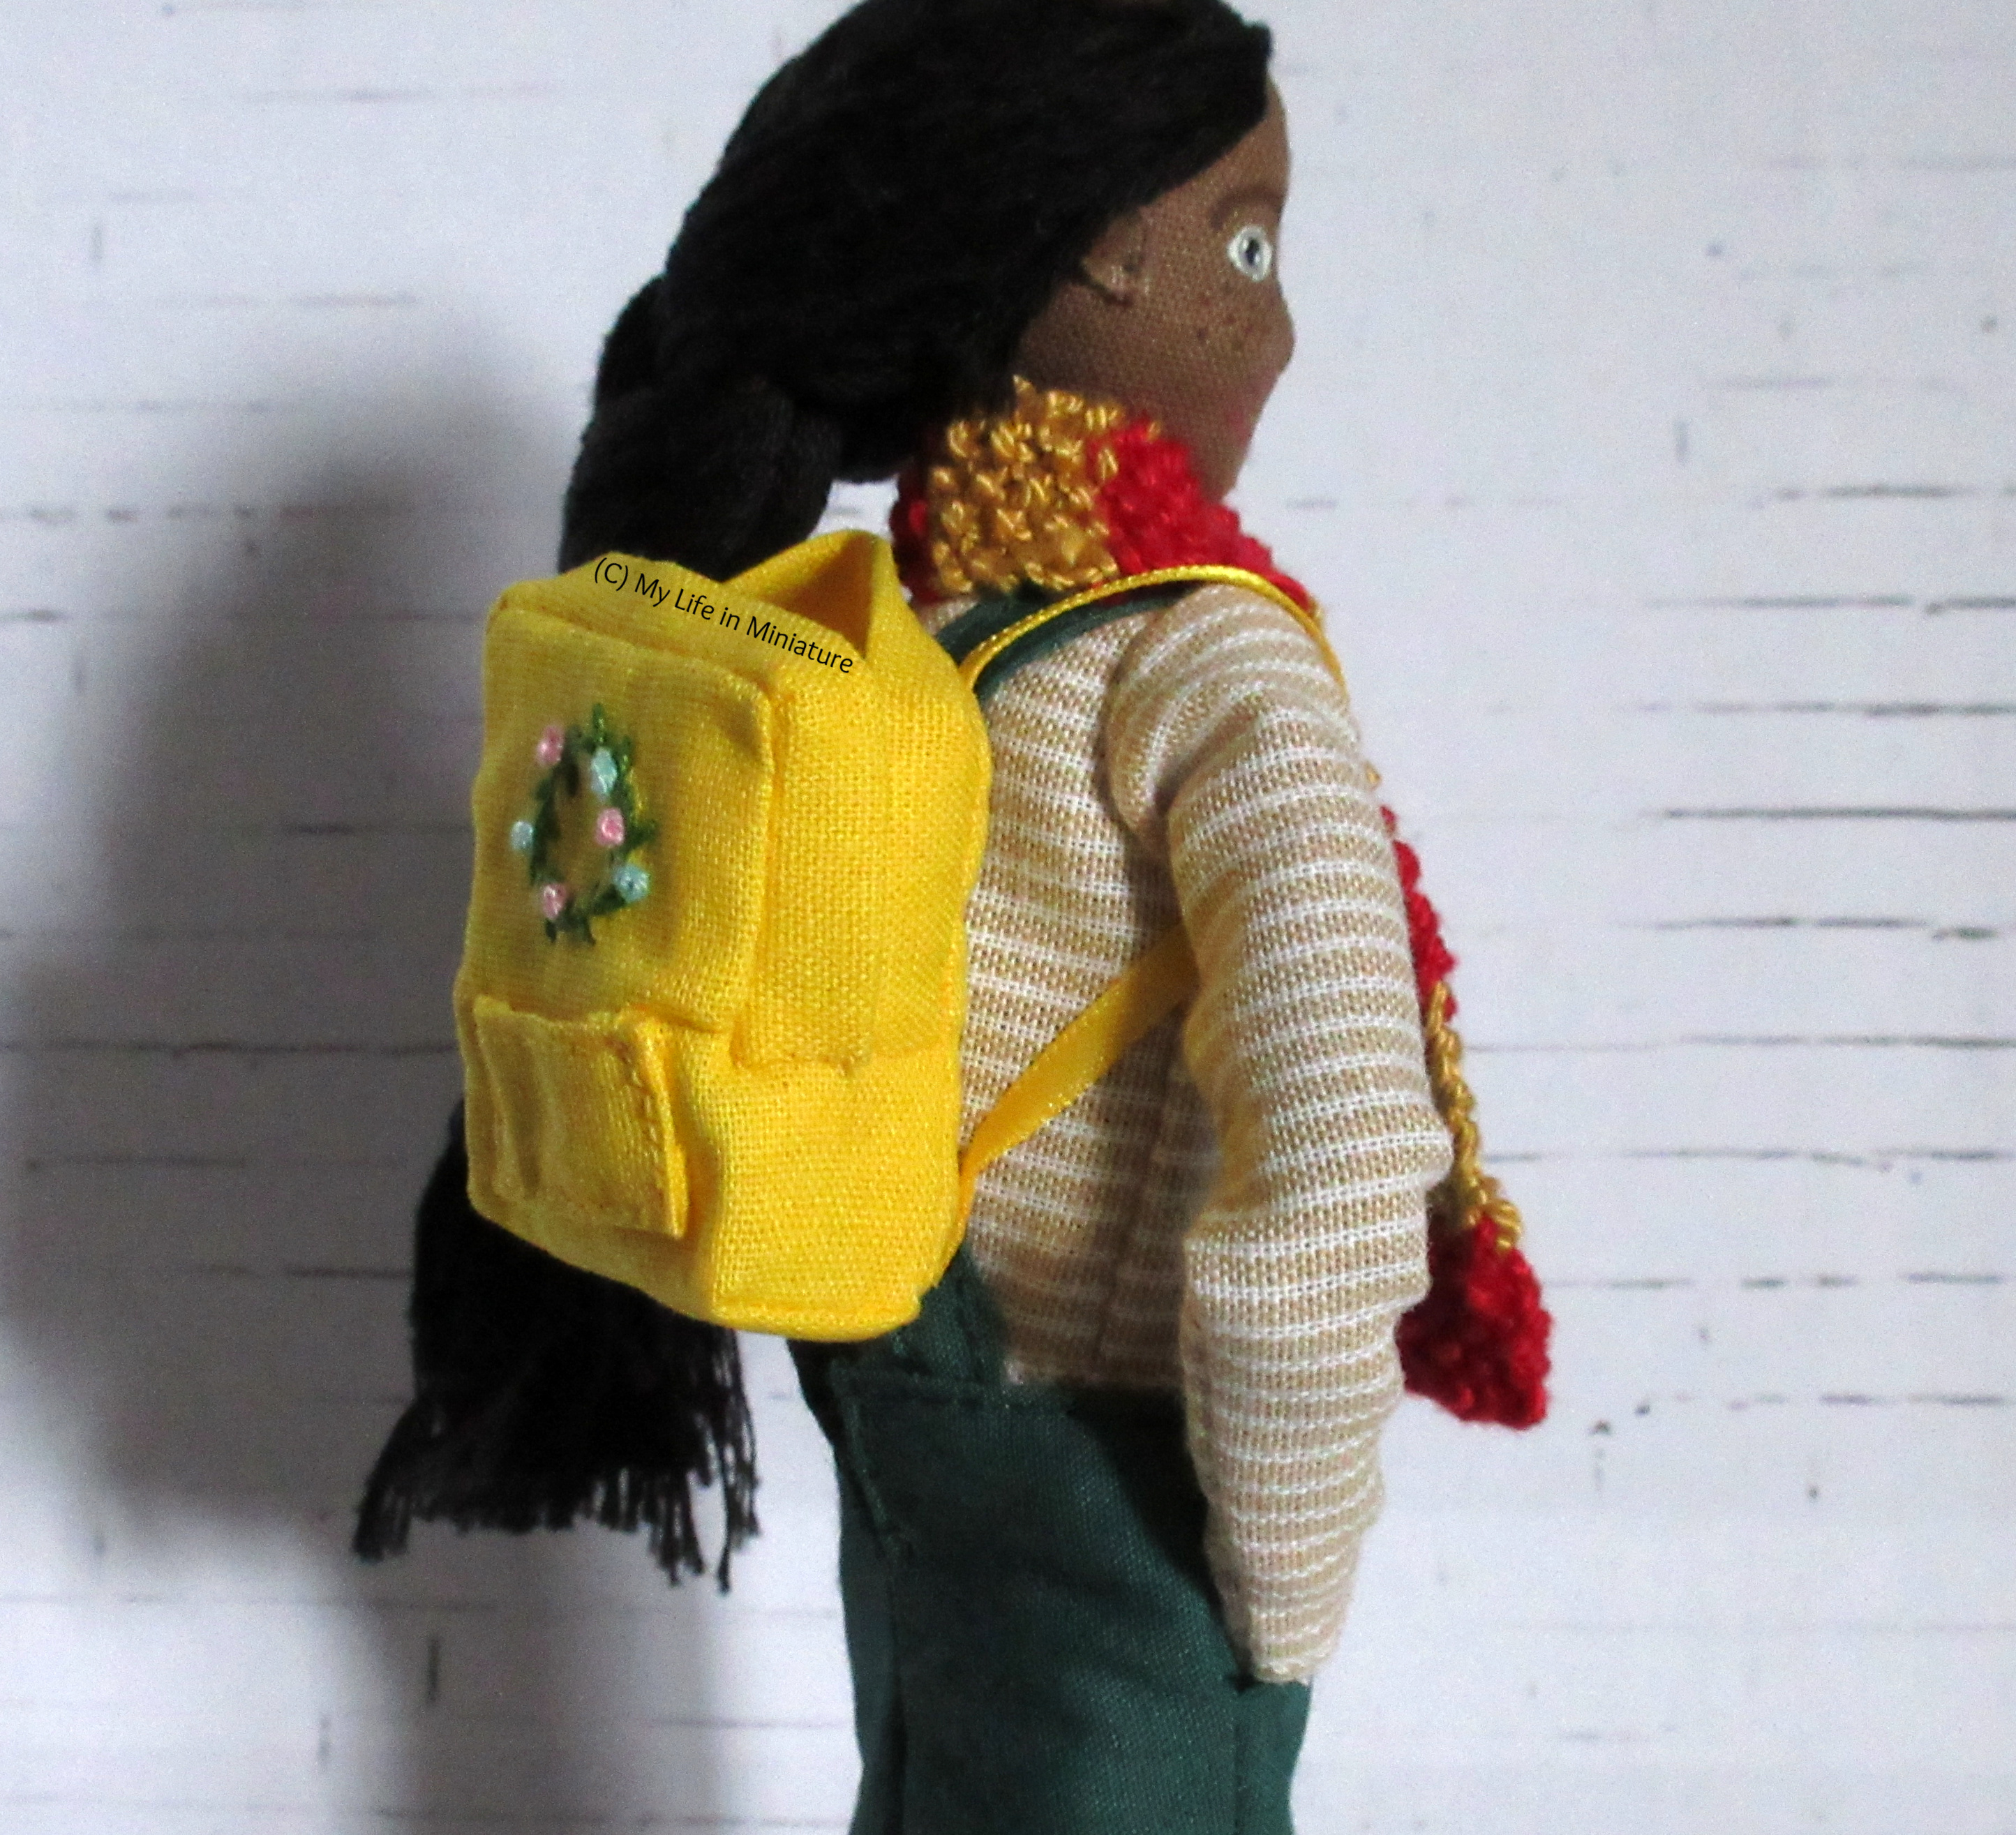 Side-on view of Petra wearing the backpack. The yellow ribbon straps are visible, as well as the side of the backpack.